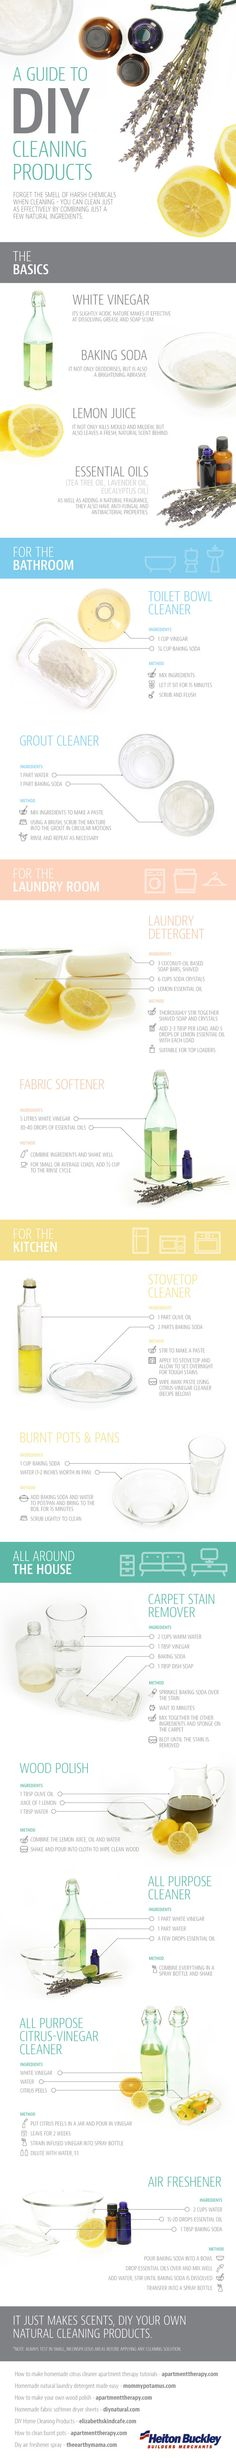 DIY guide to natural home cleaning http://bit.ly/1nfHli3